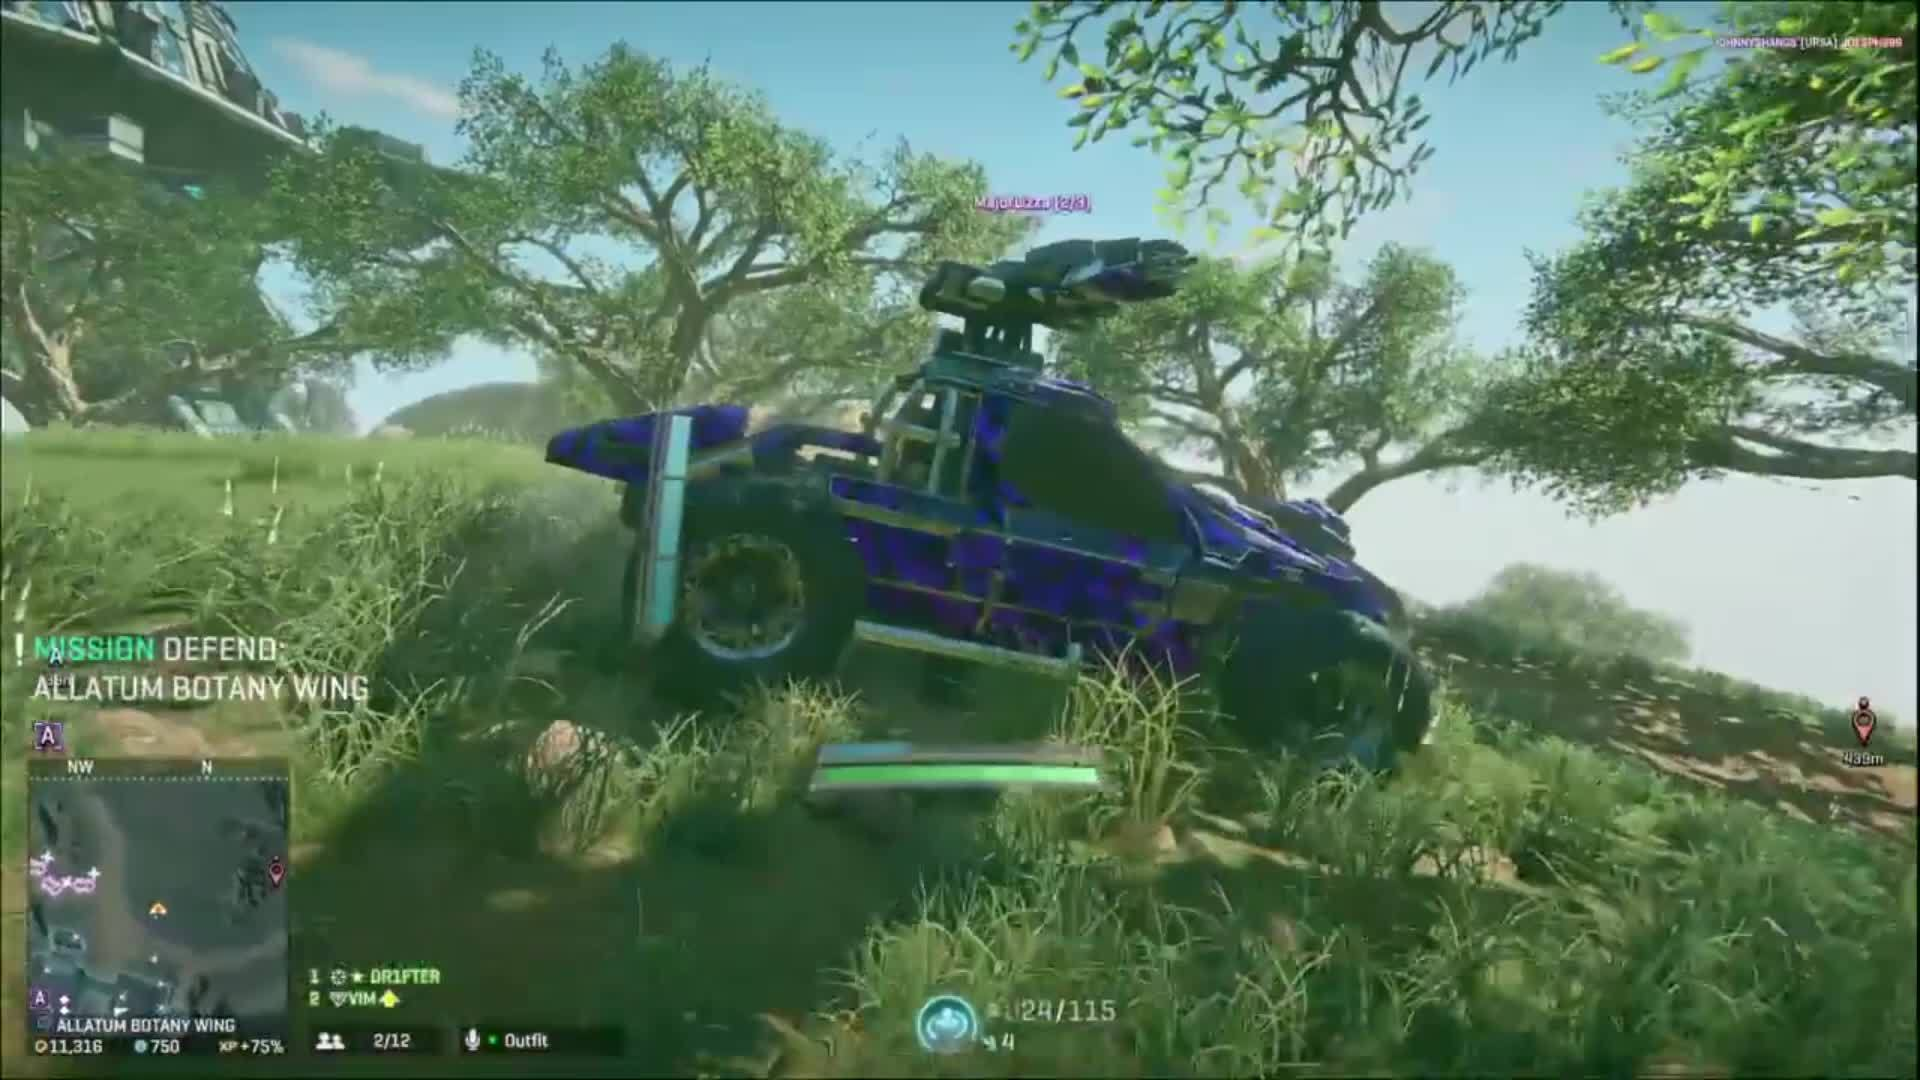 ps4planetside2, This Is What I Get For Trying To Be Social GIFs